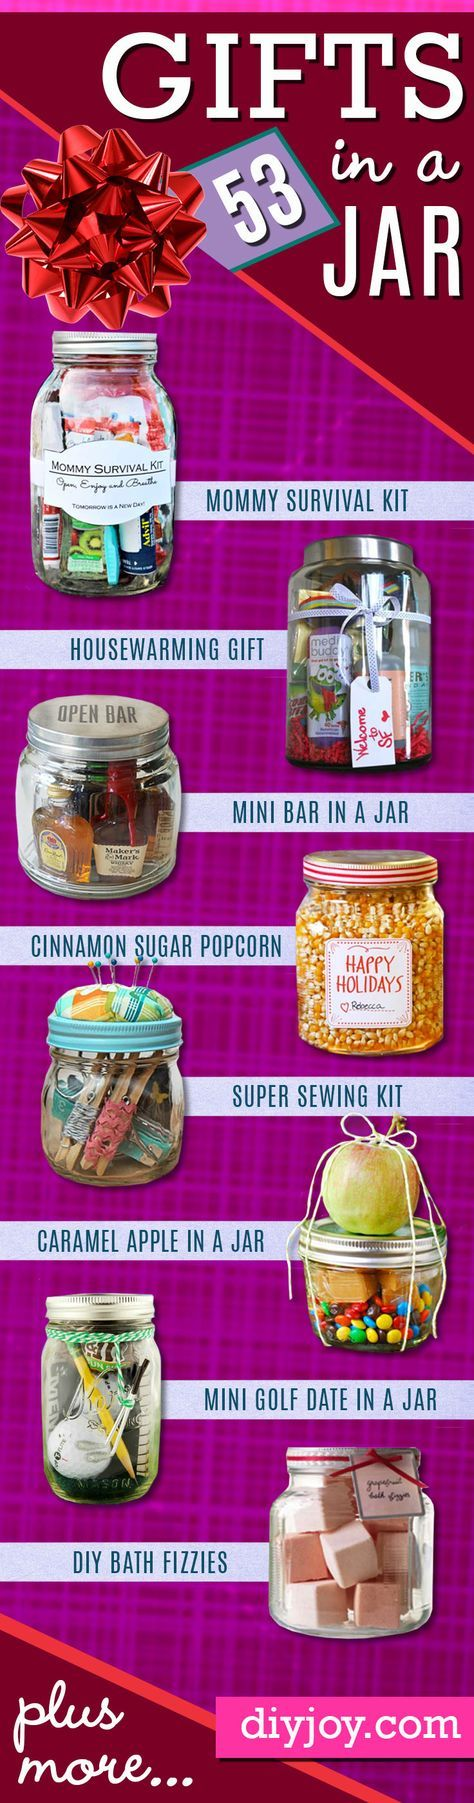 53 Coolest DIY Mason Jar Gifts + Other Fun Ideas in A JarLuna Fibi